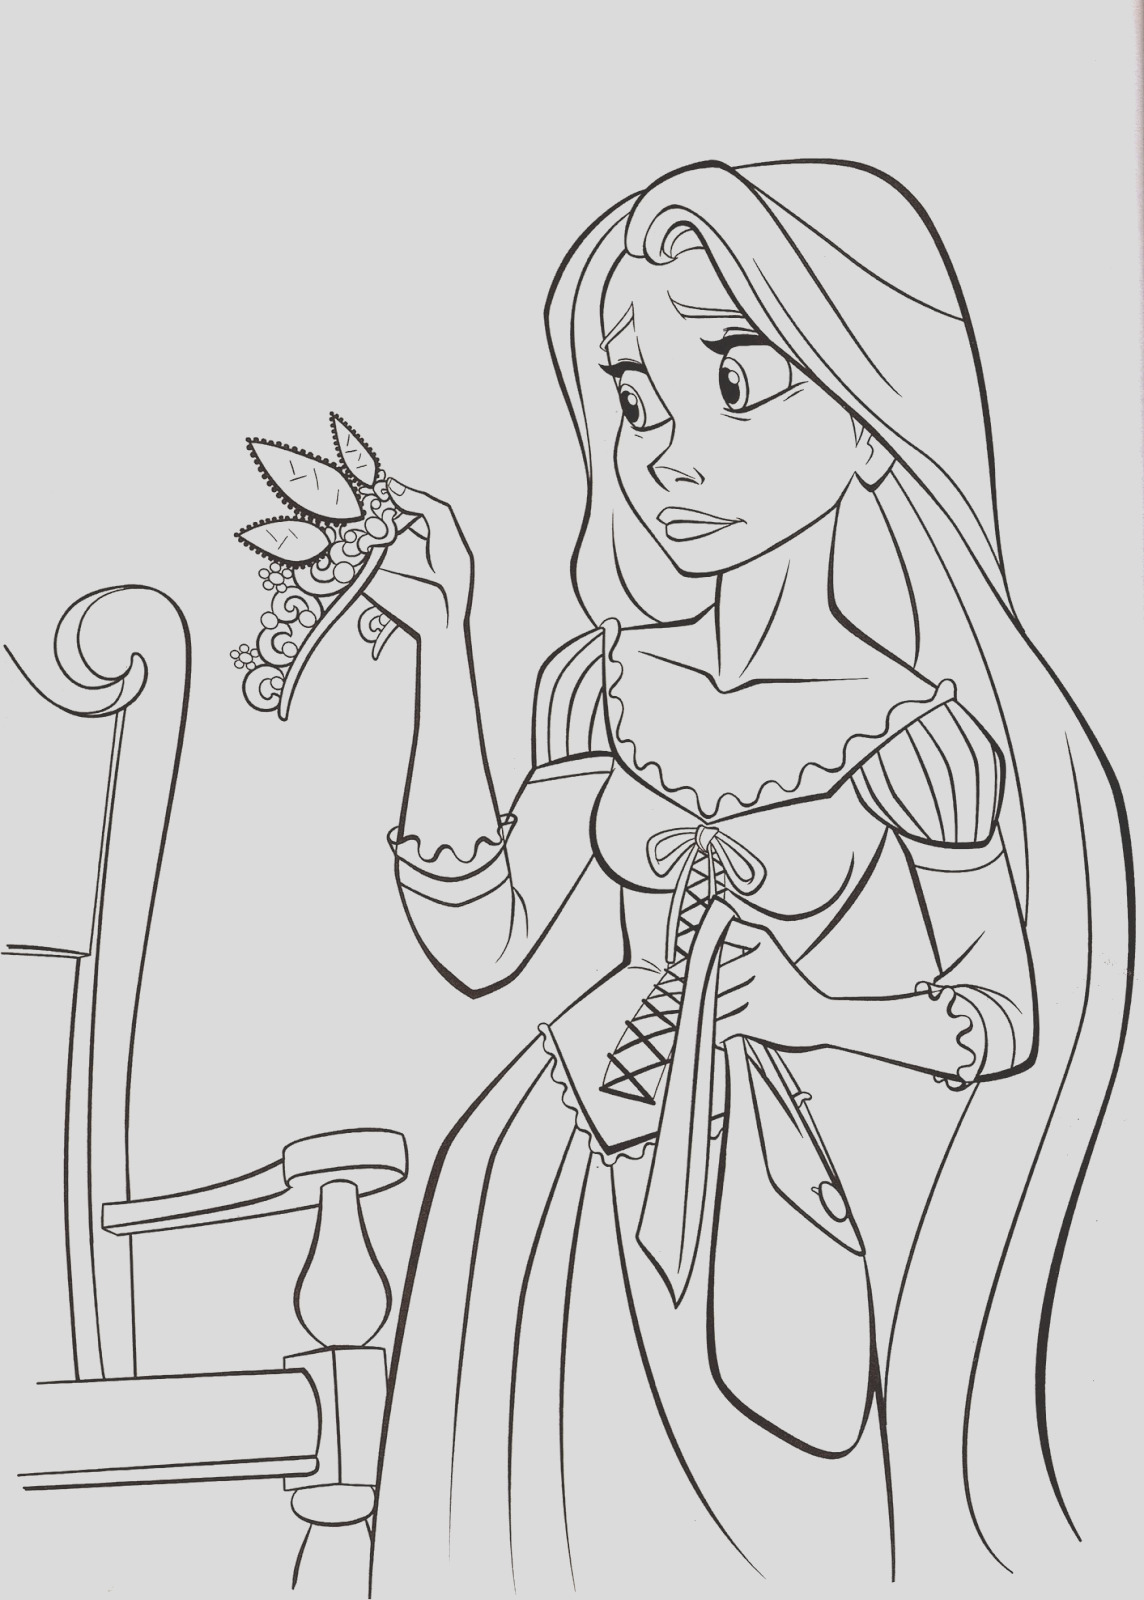 walt disney printable tangled princess